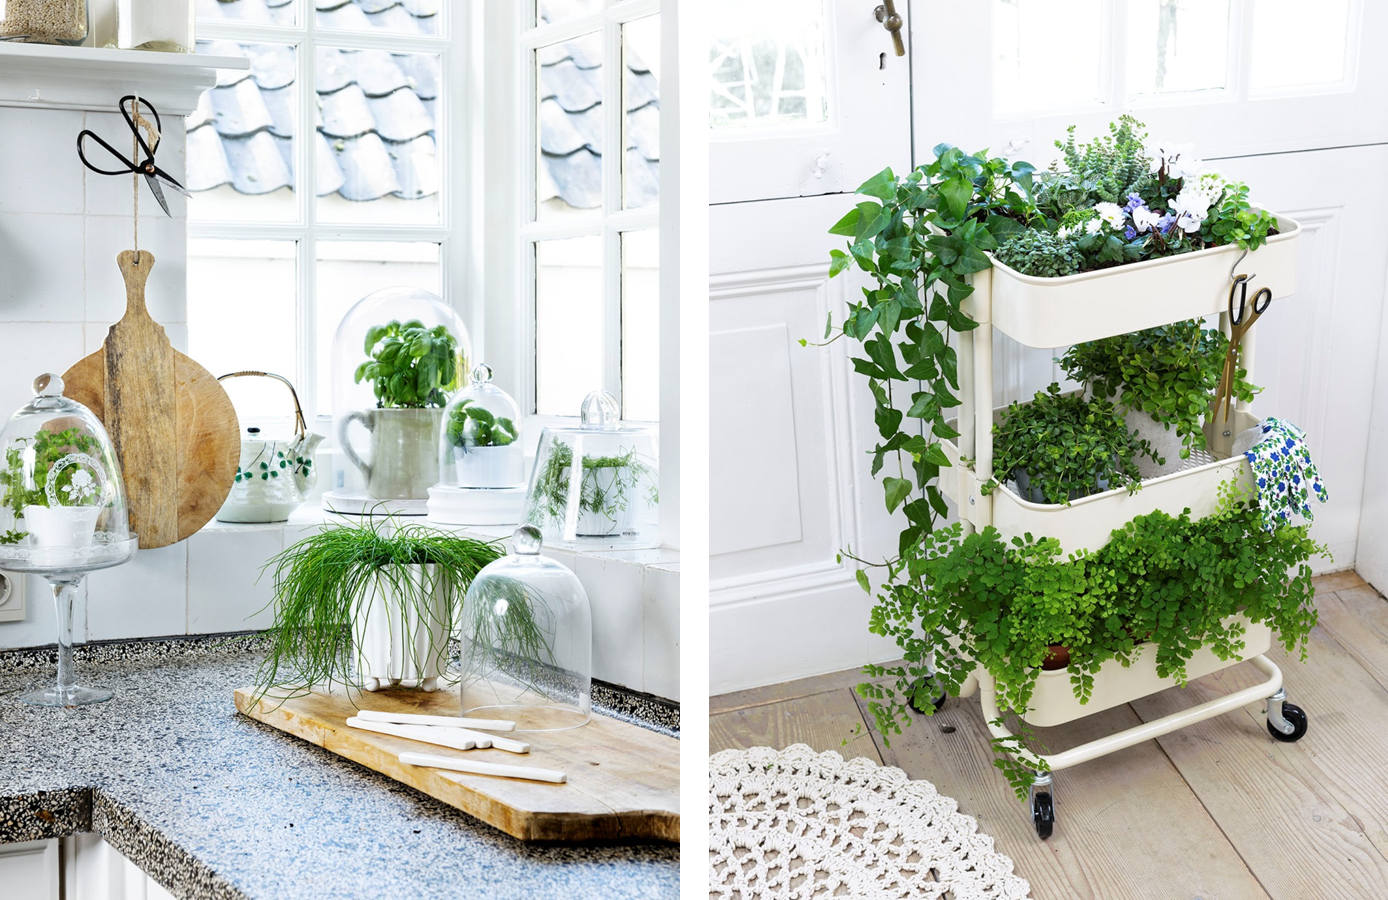 Decorar la casa con plantas de interiores for Como decorar un jardin con plantas